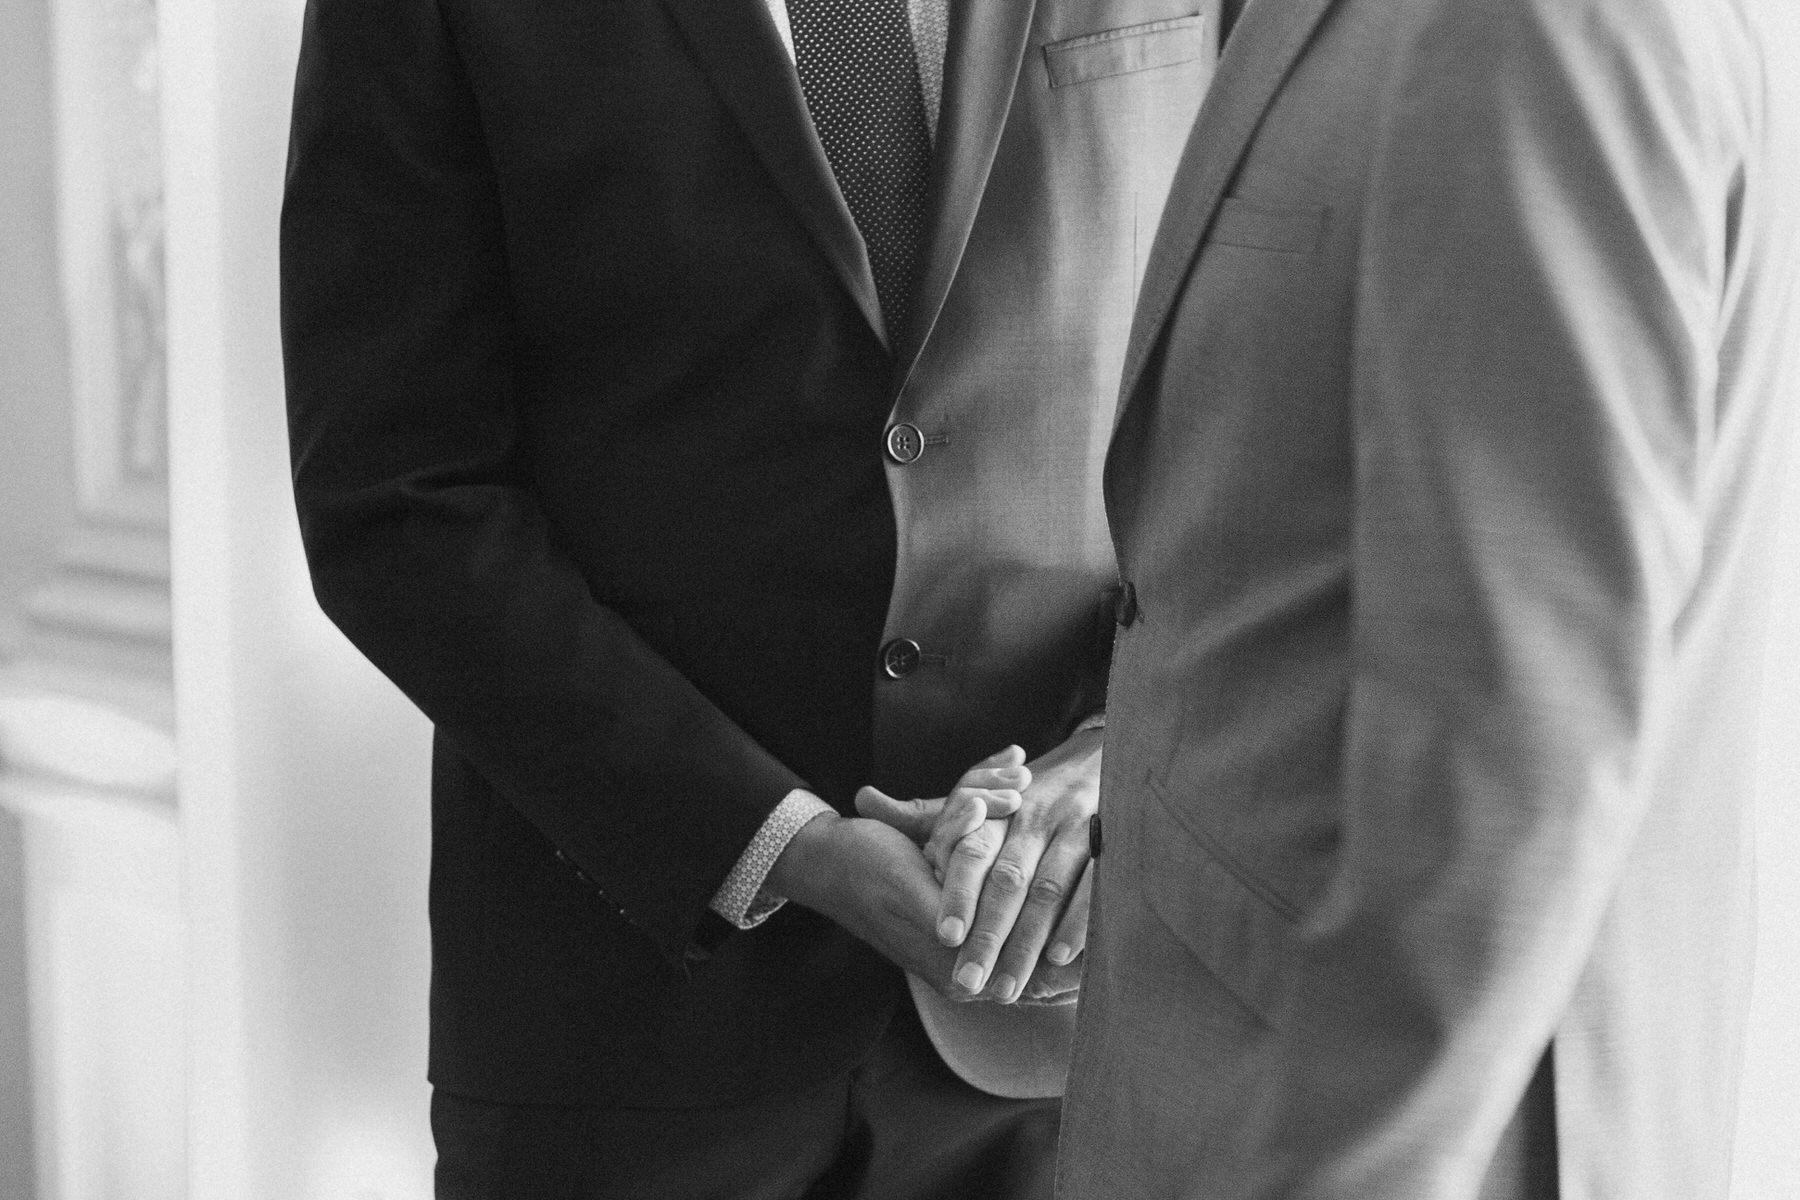 73 Same Sex Wedding couple holding hands ceremony.jpg